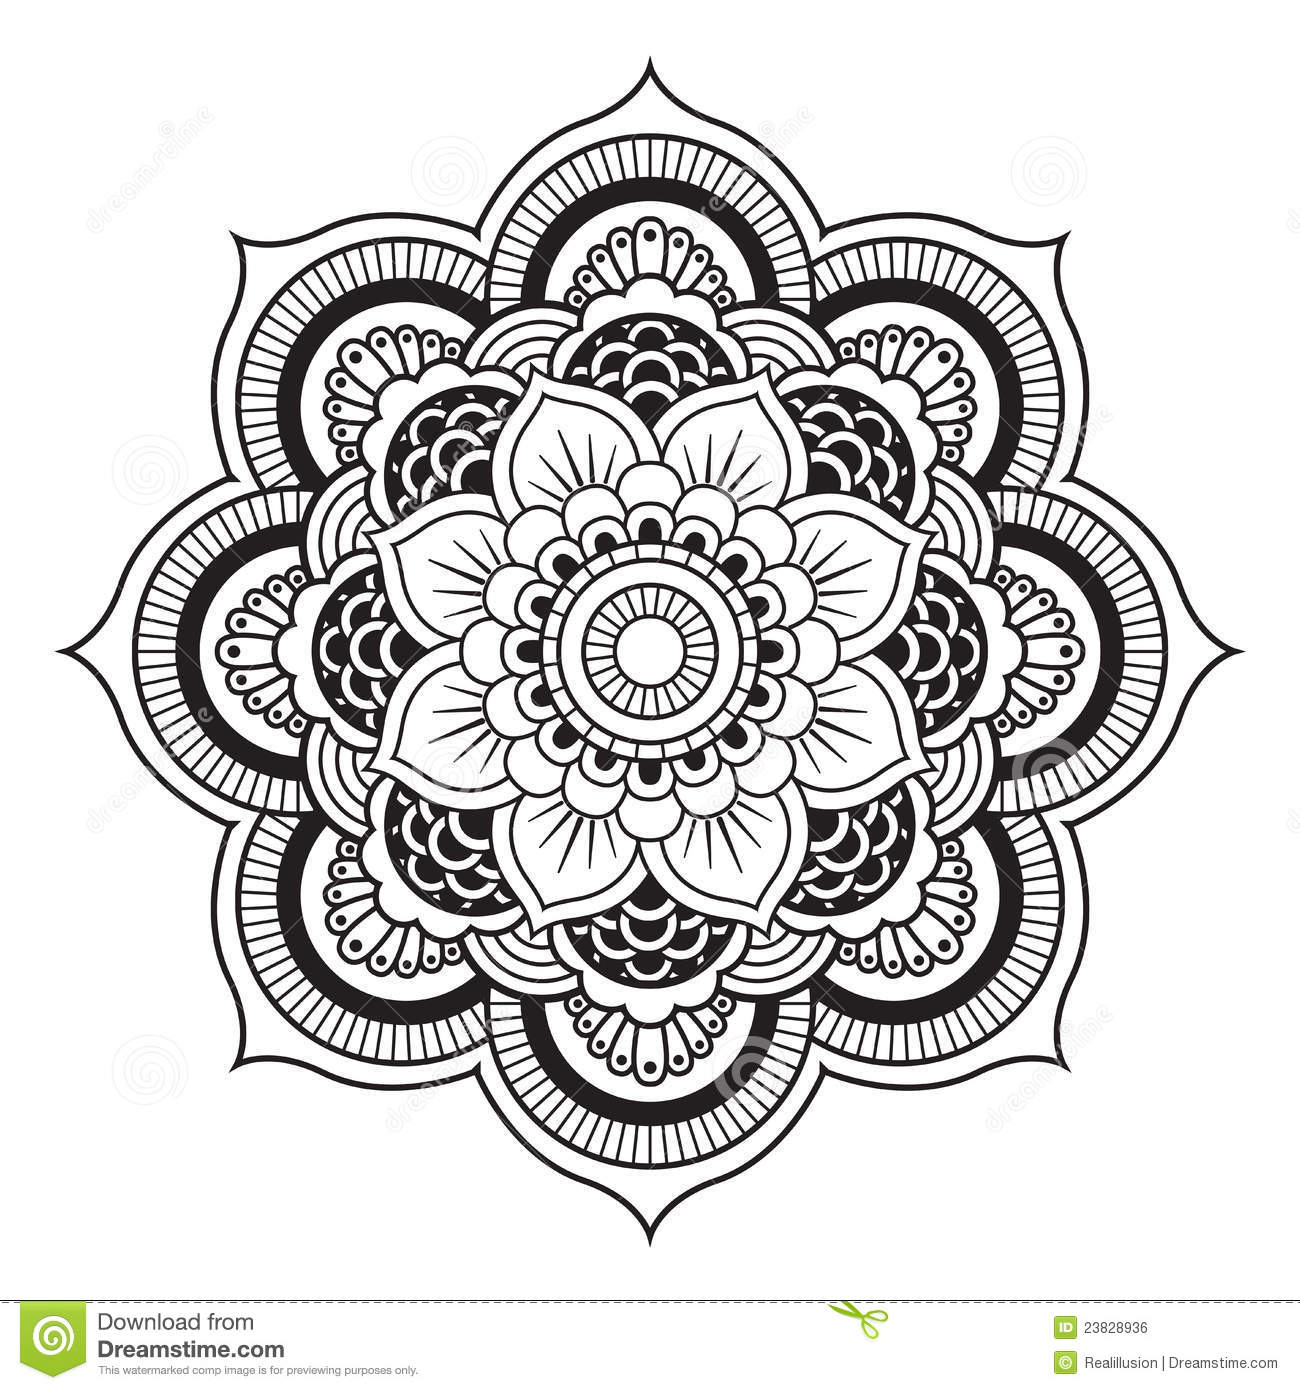 tattoo sol tribe denver Free  23828936  Image Image: Royalty Mandala Stock